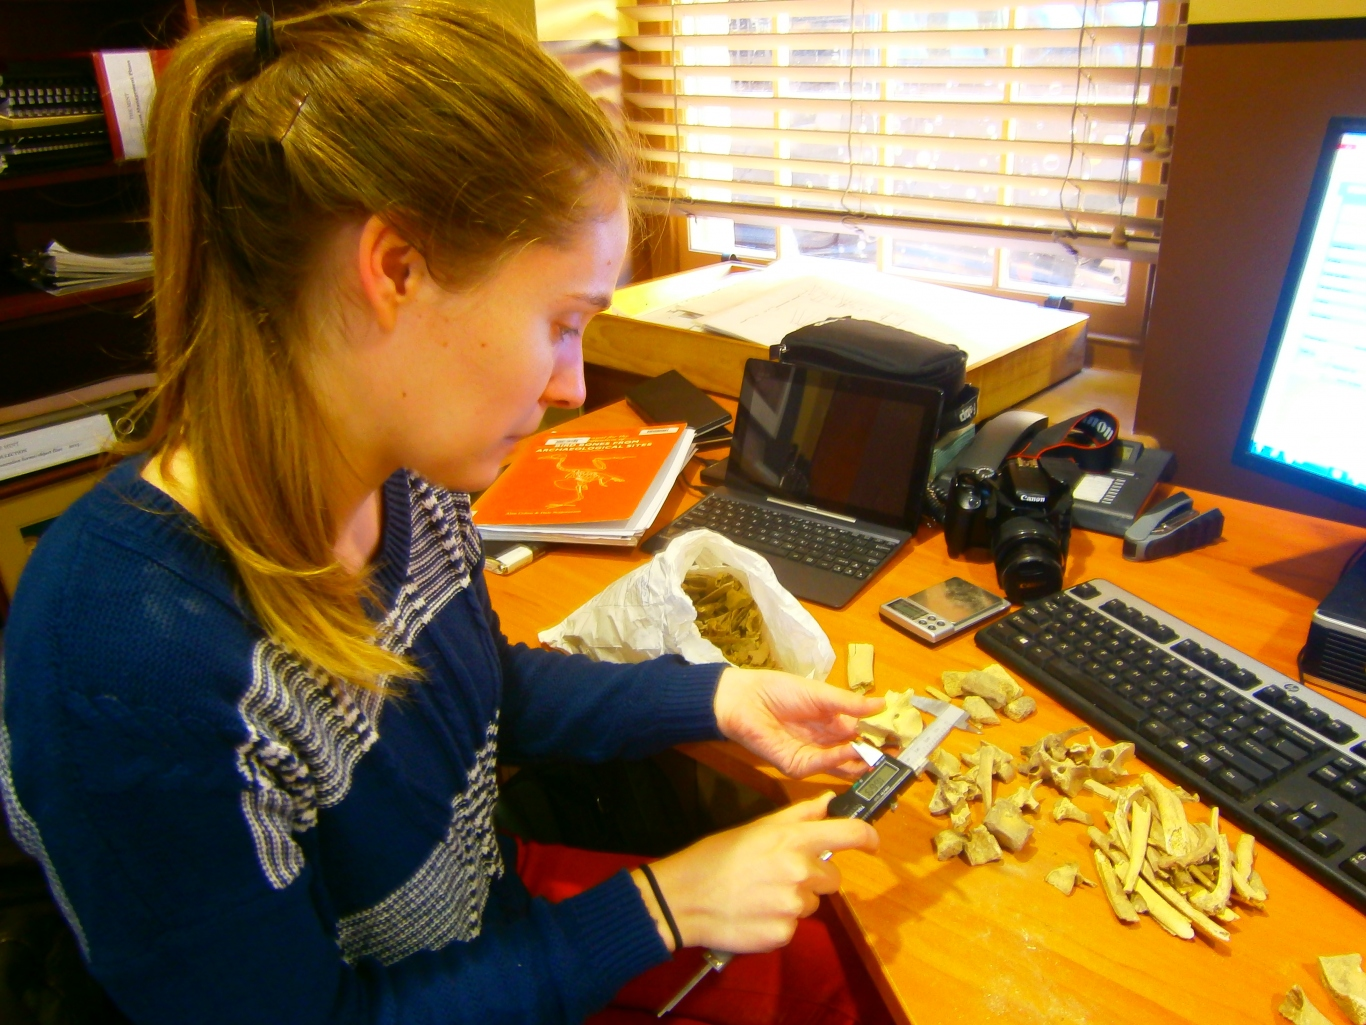 Woman examining collection items on desk.